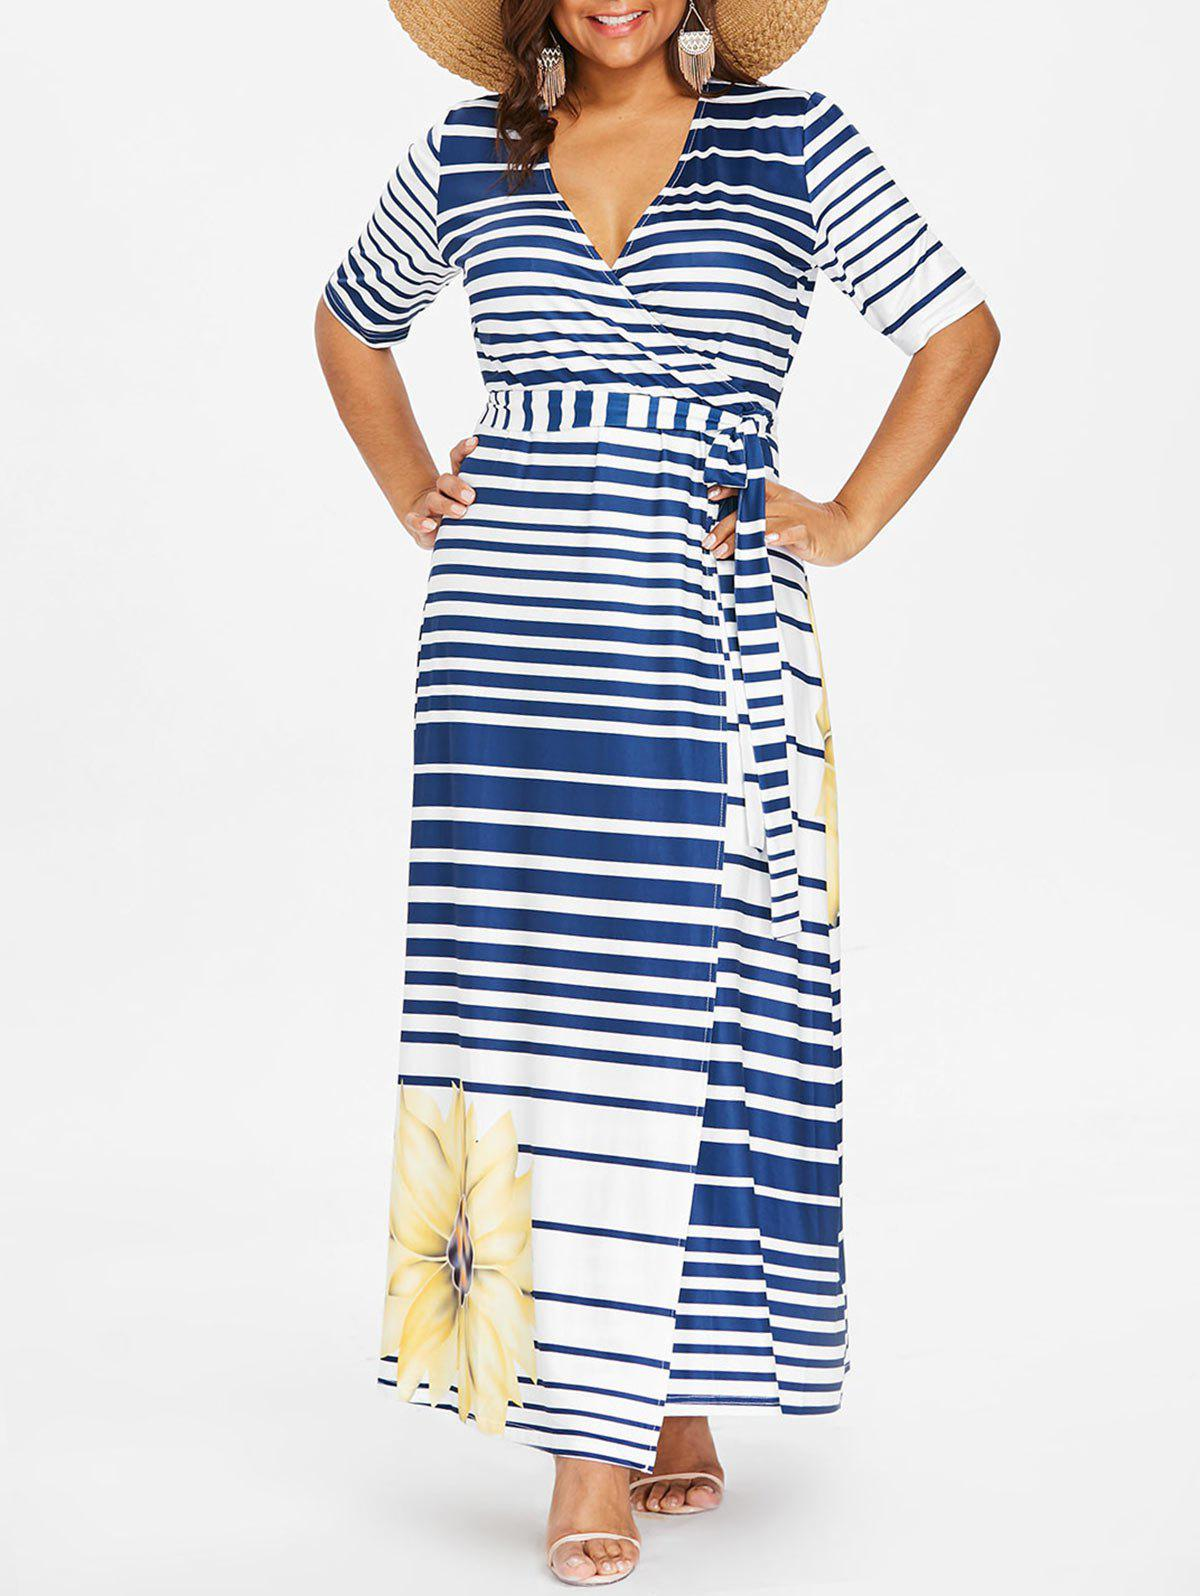 44% OFF] Plus Size Floral Print Striped Maxi Dress | Rosegal